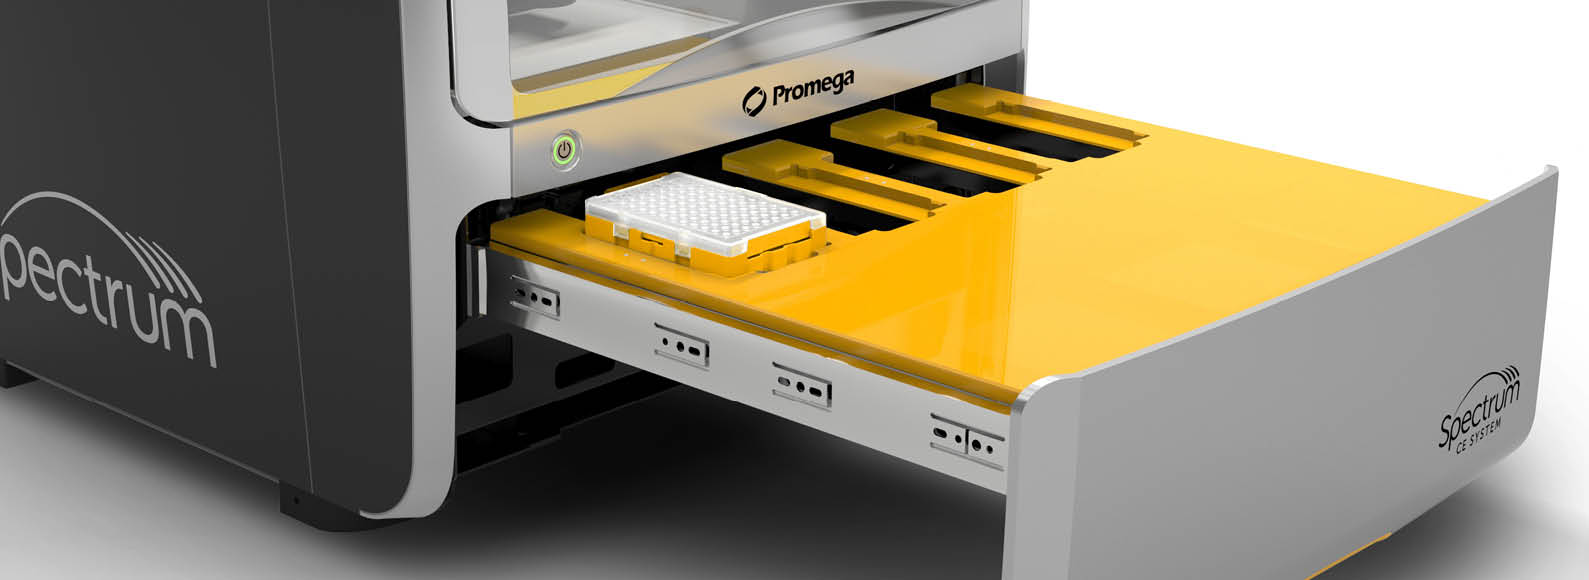 Spectrum CE System has a convenient 4-plate drawer for increased capacity.